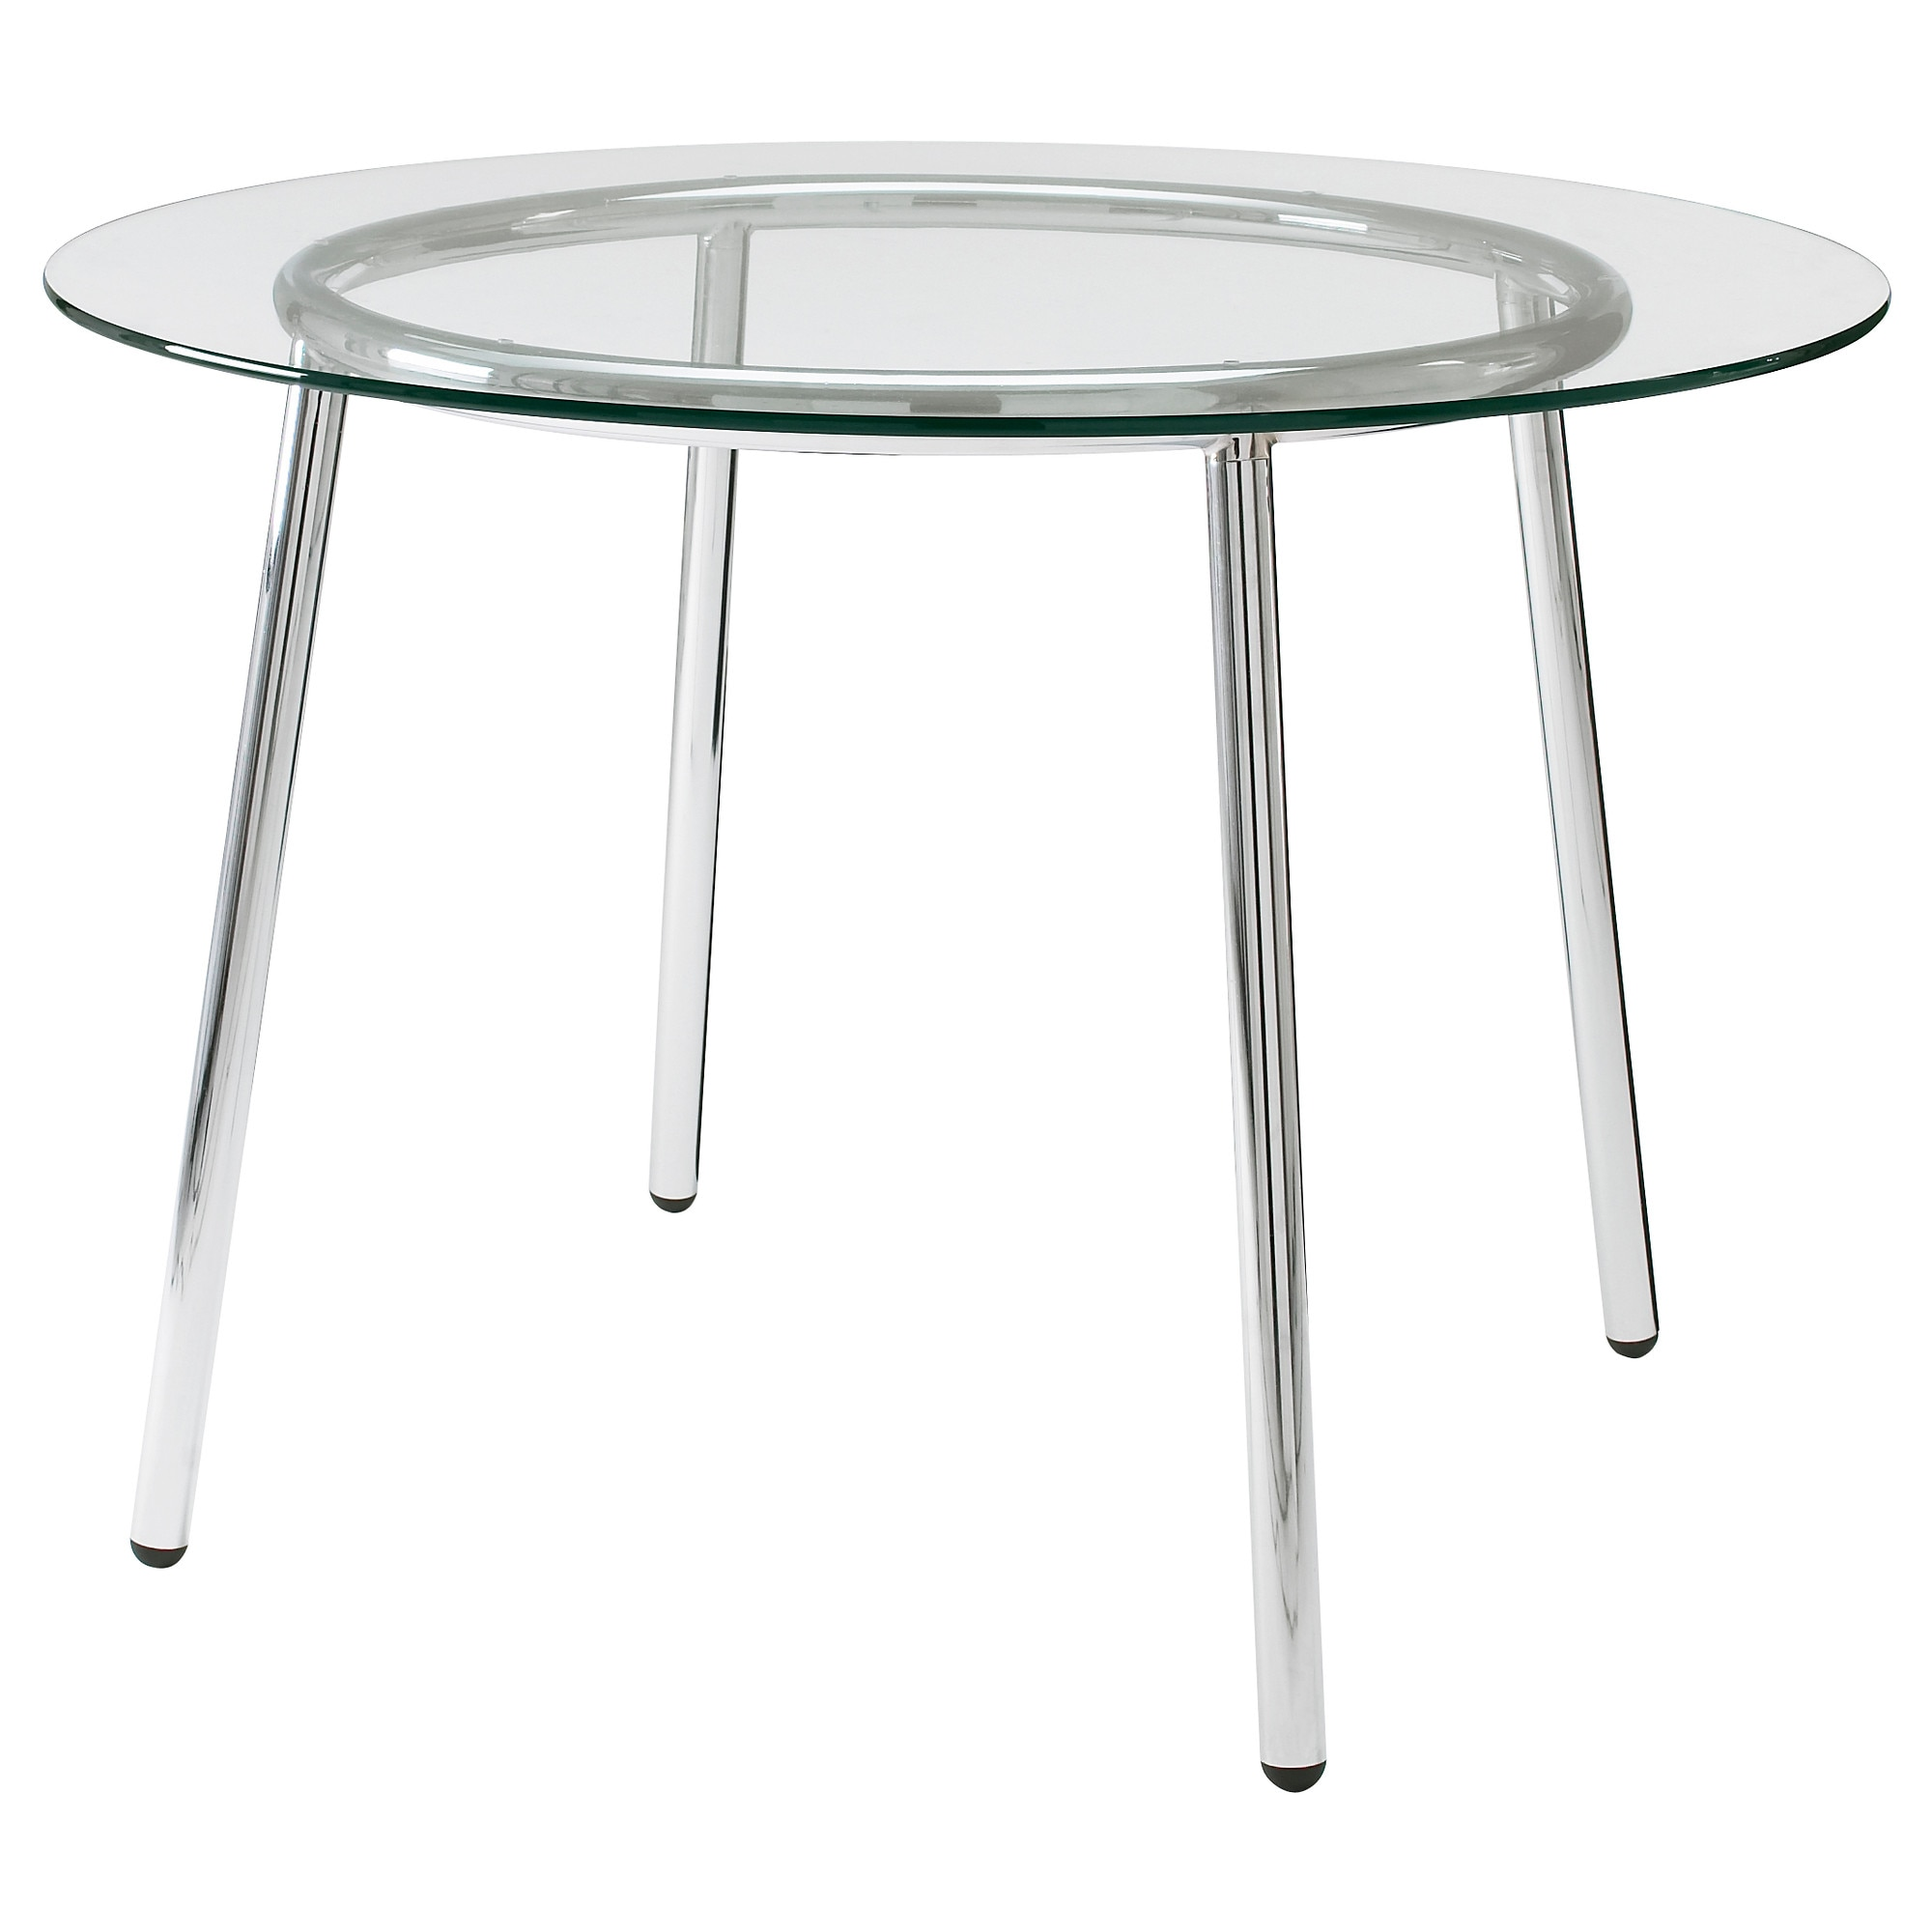 ikea glass dining table SALMI Table   IKEA ikea glass dining table